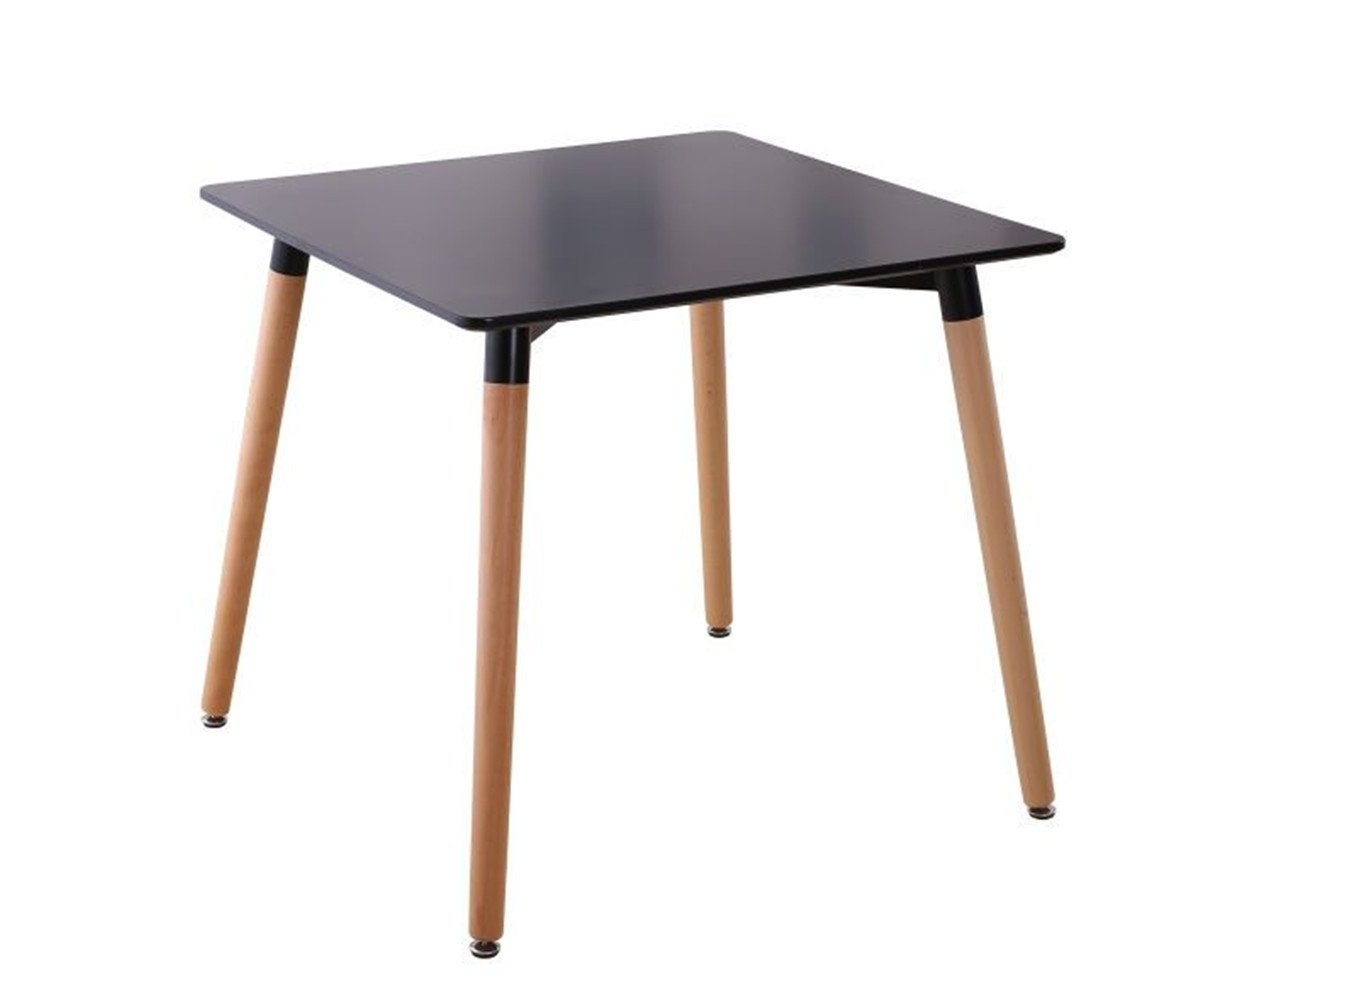 "Creation Yusheng Square Dining Table, living room table with Wooden Legs, Black - Length*Width*Height= 31.4"" x 31.4"" x 28.75"" Smooth MDF (Thickness:0.71"") top create an artistic dining table with the screws are made of strength steel. Superior strength and durability X' bearing structure ensure stable and sturdy. MDF top that makes clean-up simple and quick . - kitchen-dining-room-furniture, kitchen-dining-room, kitchen-dining-room-tables - 51HCBCKYWML -"